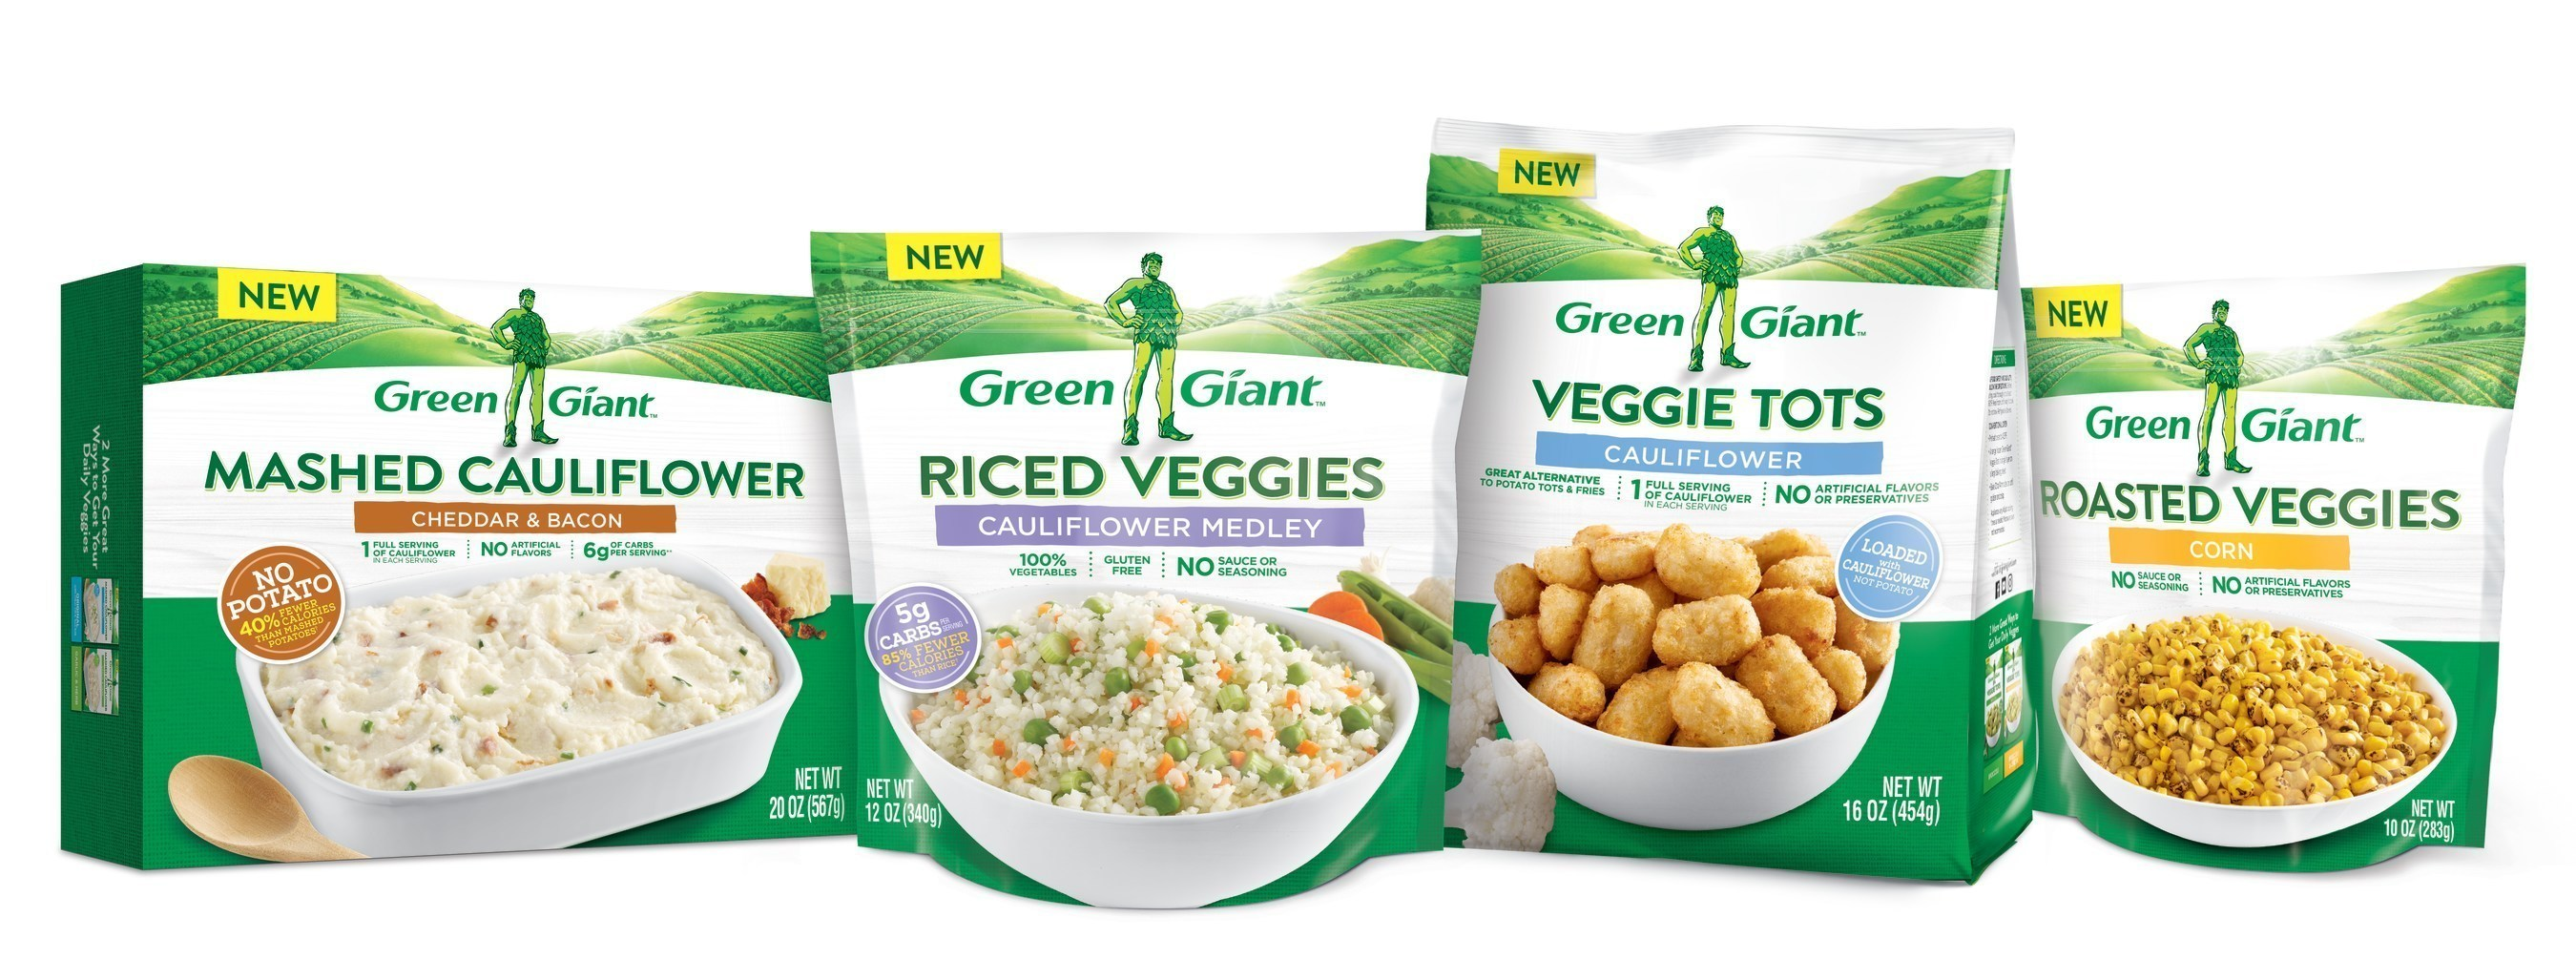 Green Giant(R) Returns With A Purpose -- To Help America Swap In More Veggies